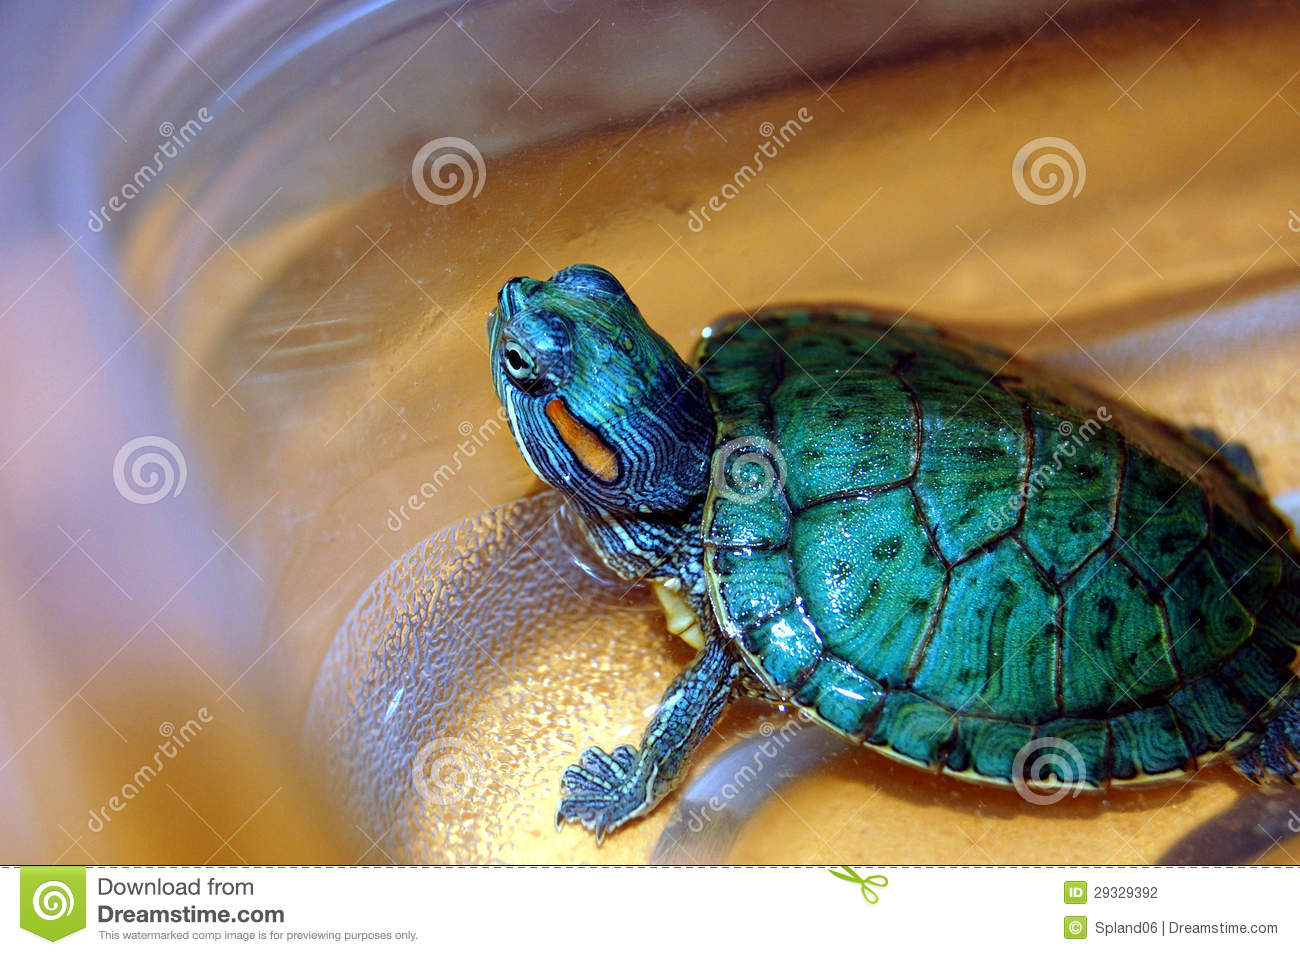 Keeping a pet turtle as a hobby.